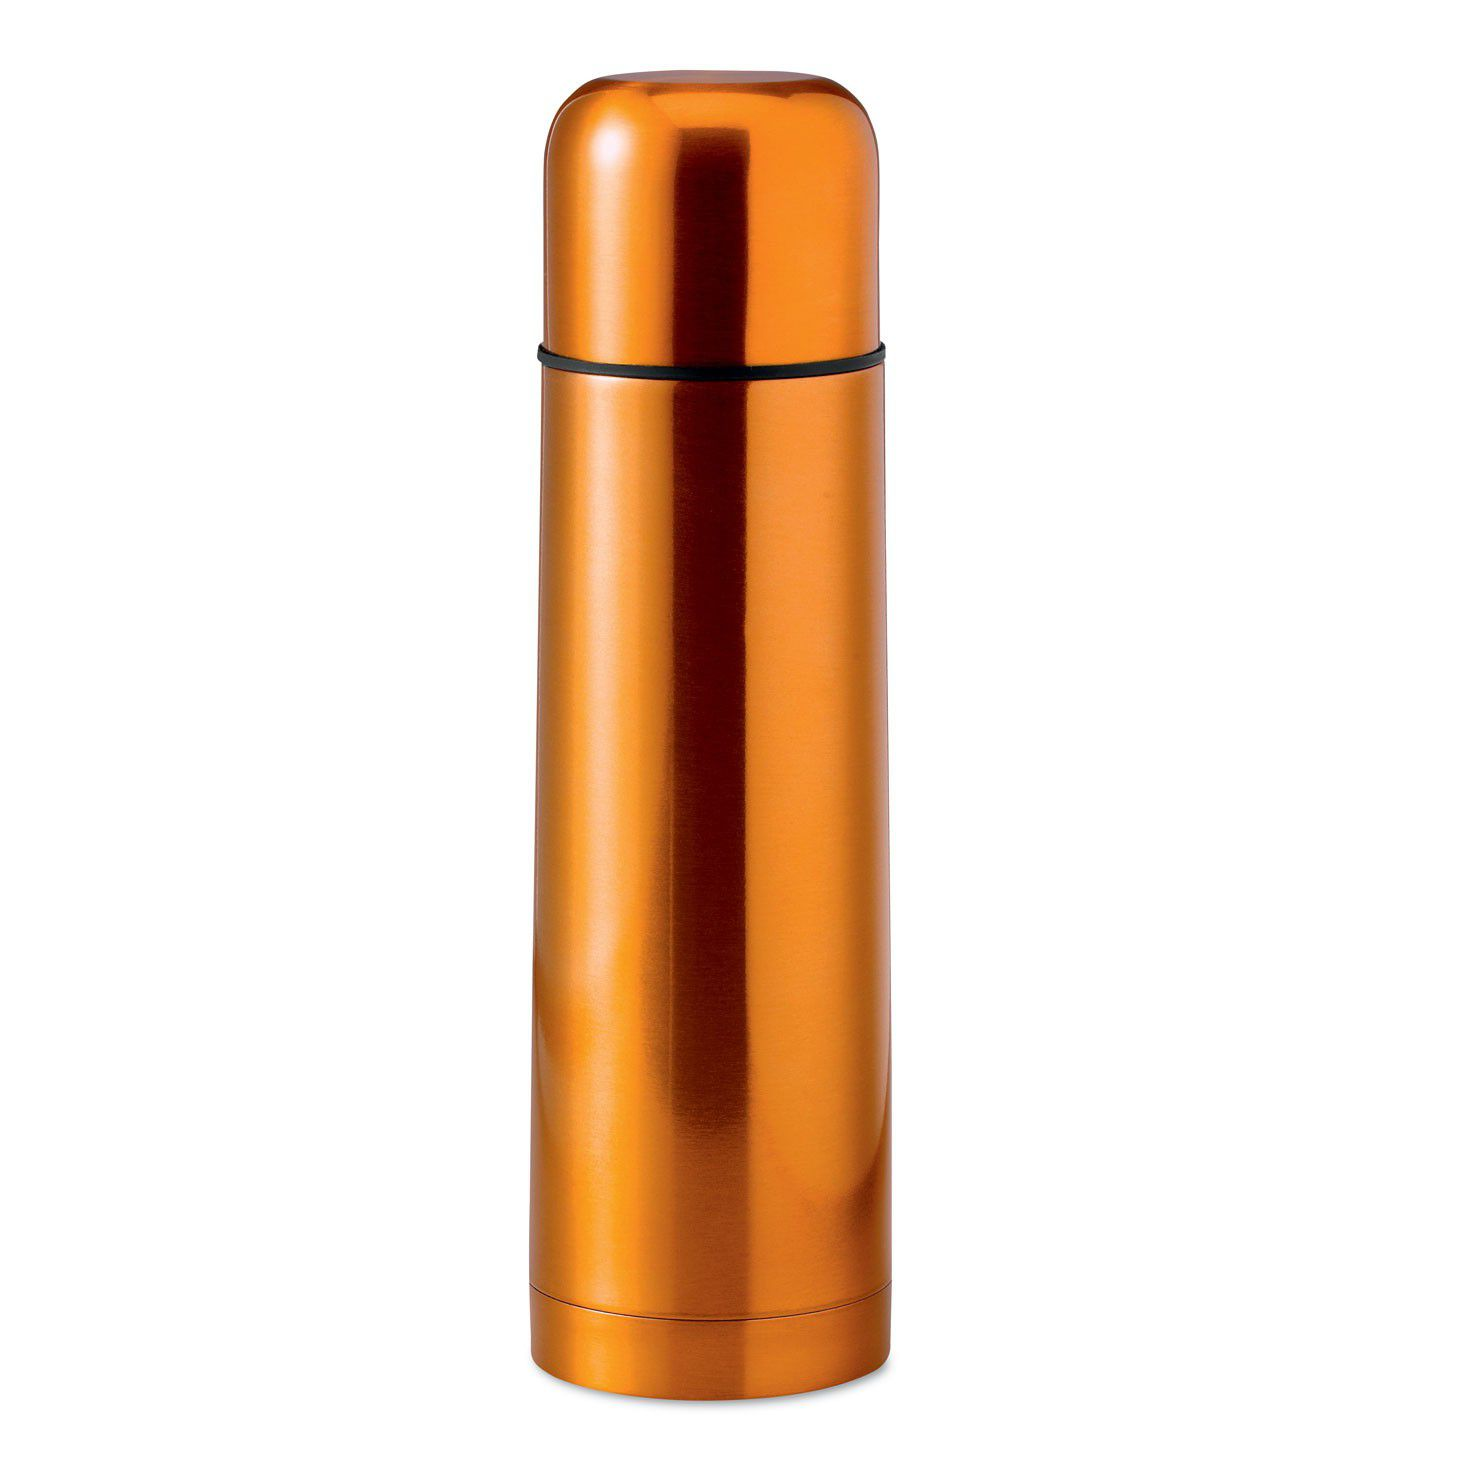 Oranje Thermosfles | Dubbelwandig | 500 ml